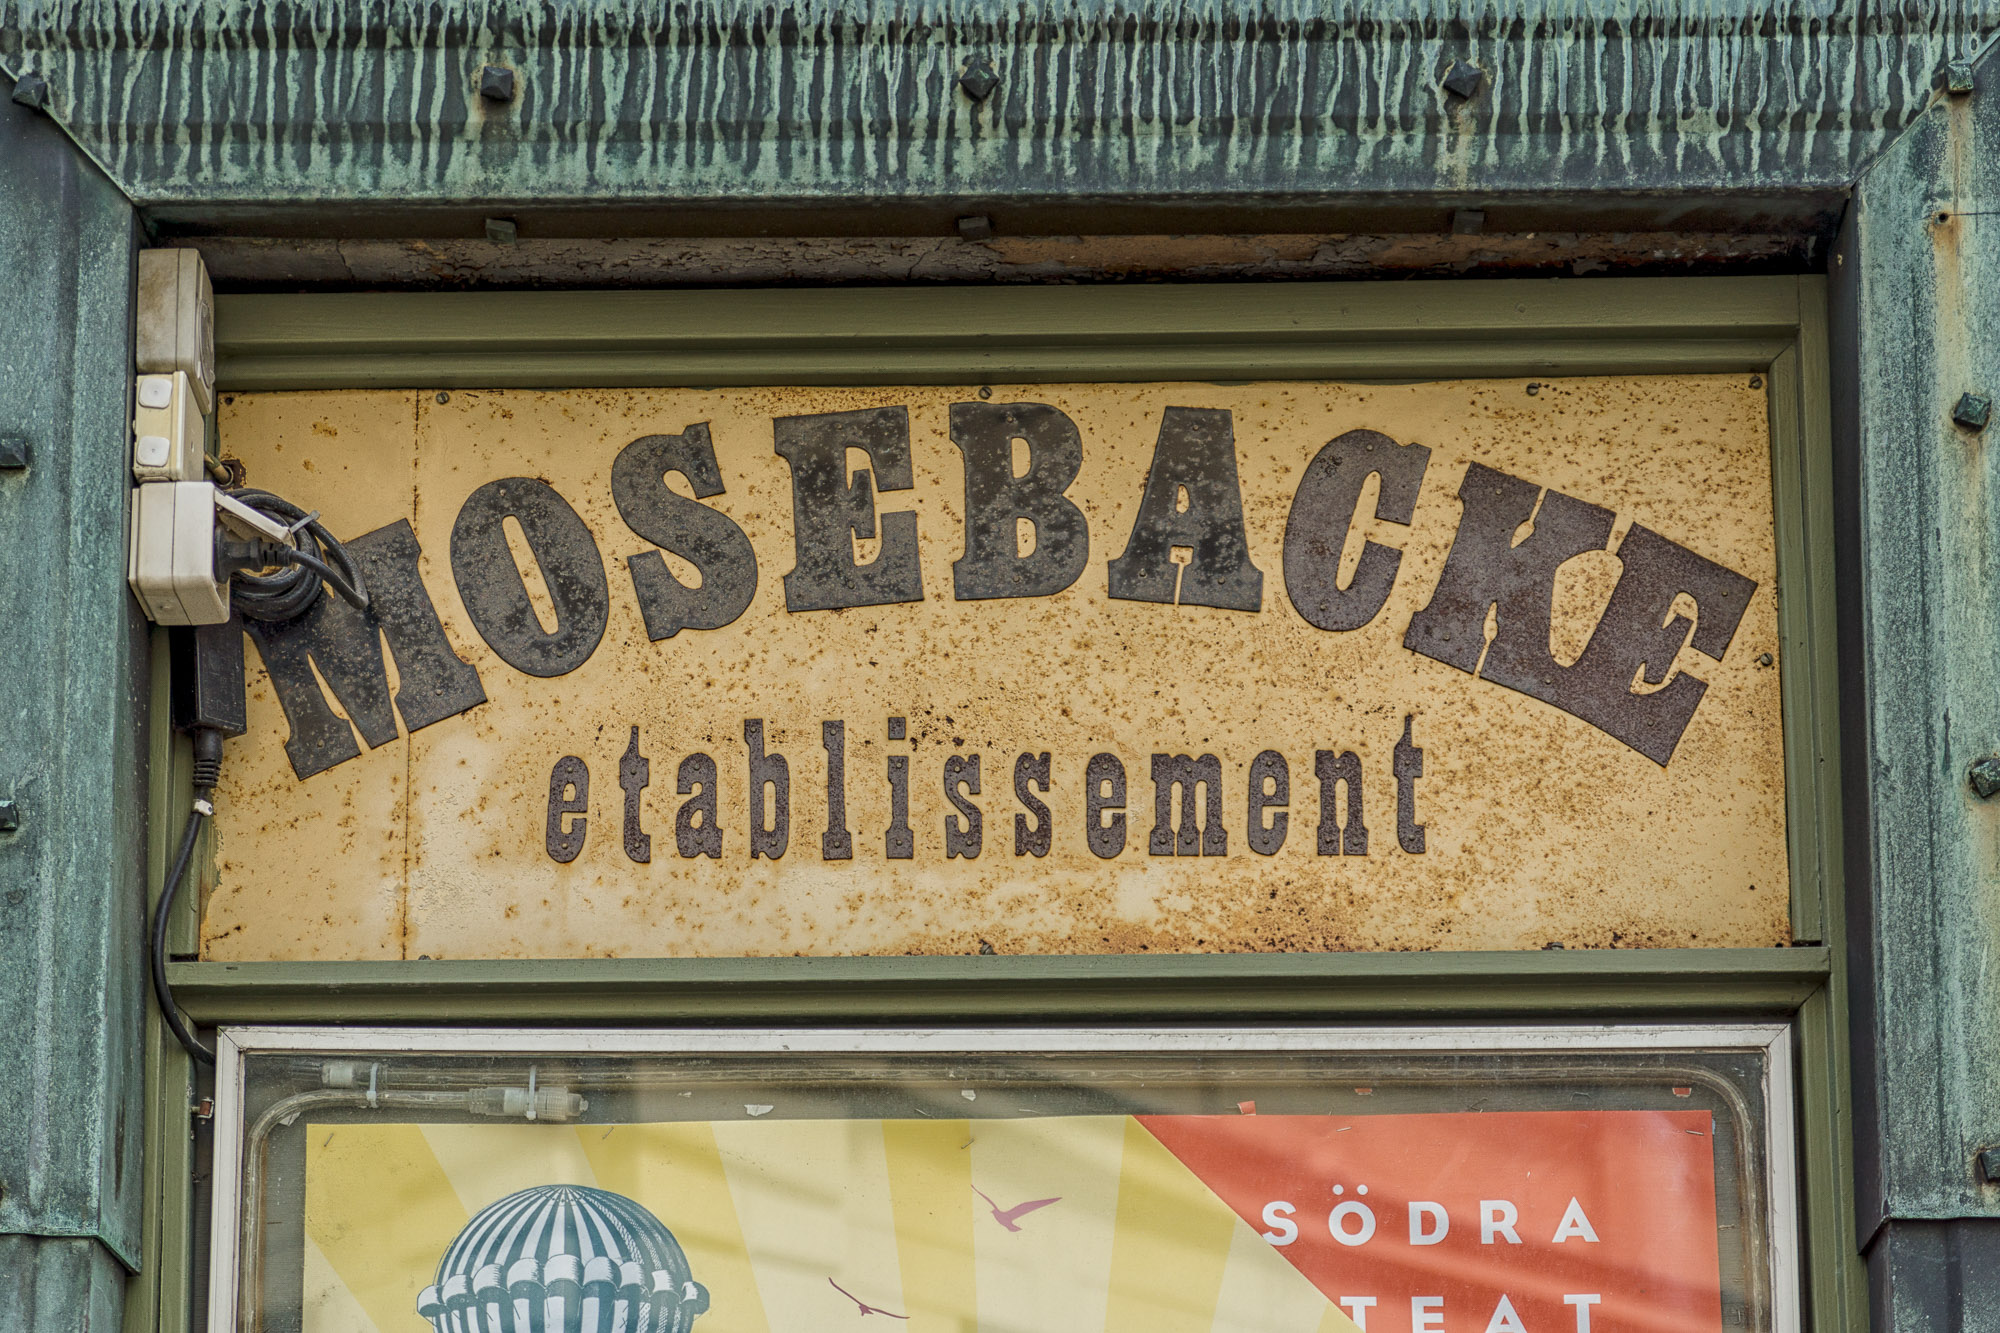 Mosebacke Etablissement